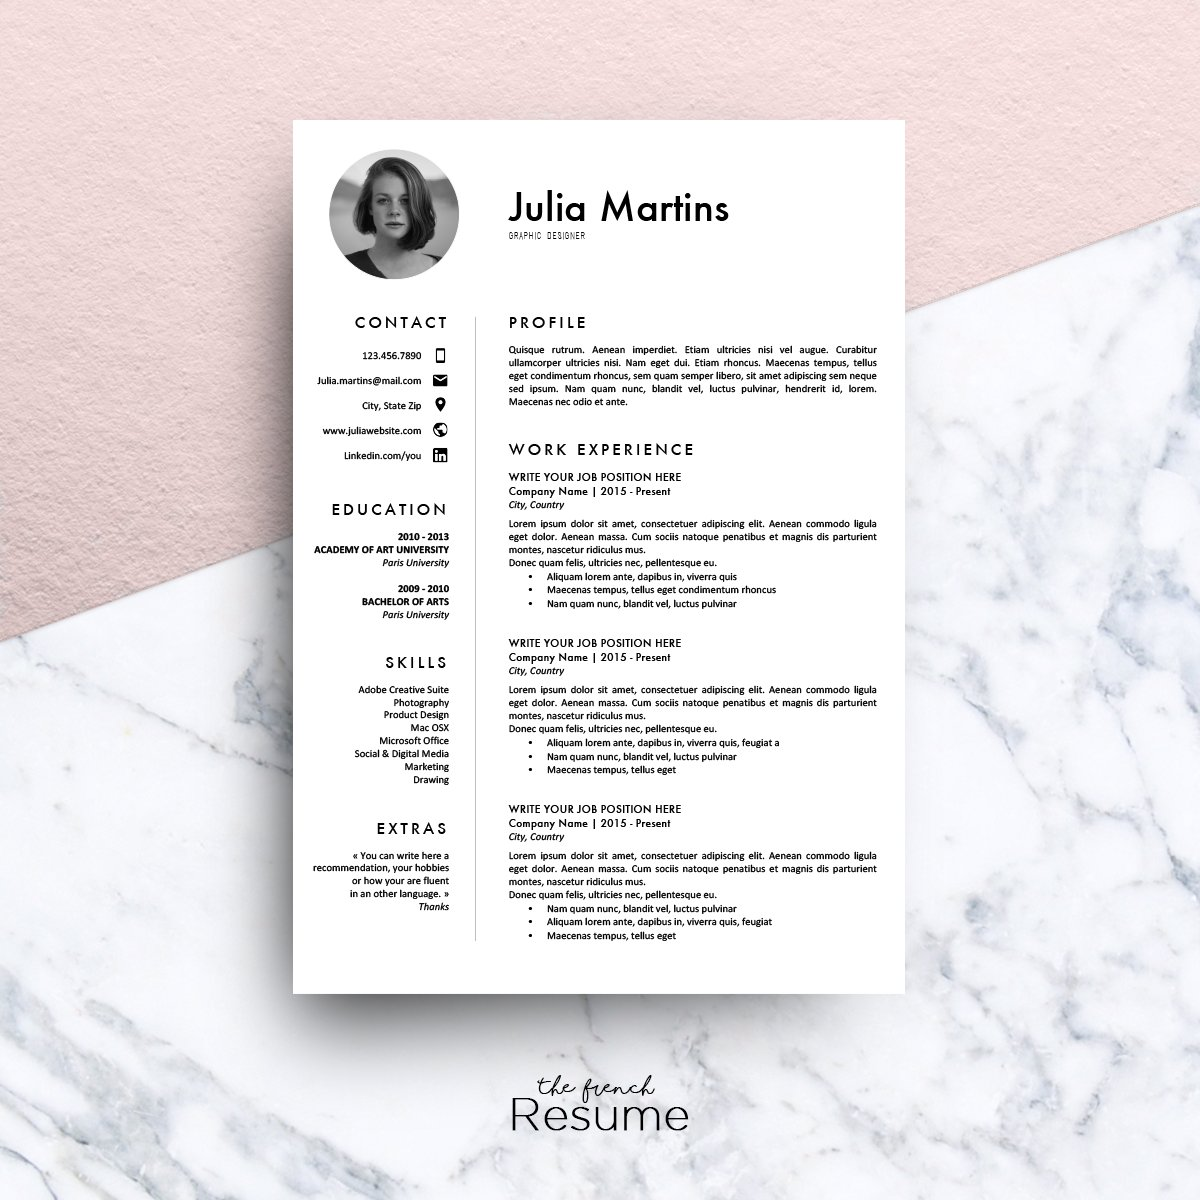 resume template ms word julia resume templates creative market - Resume Templates Microsoft Office